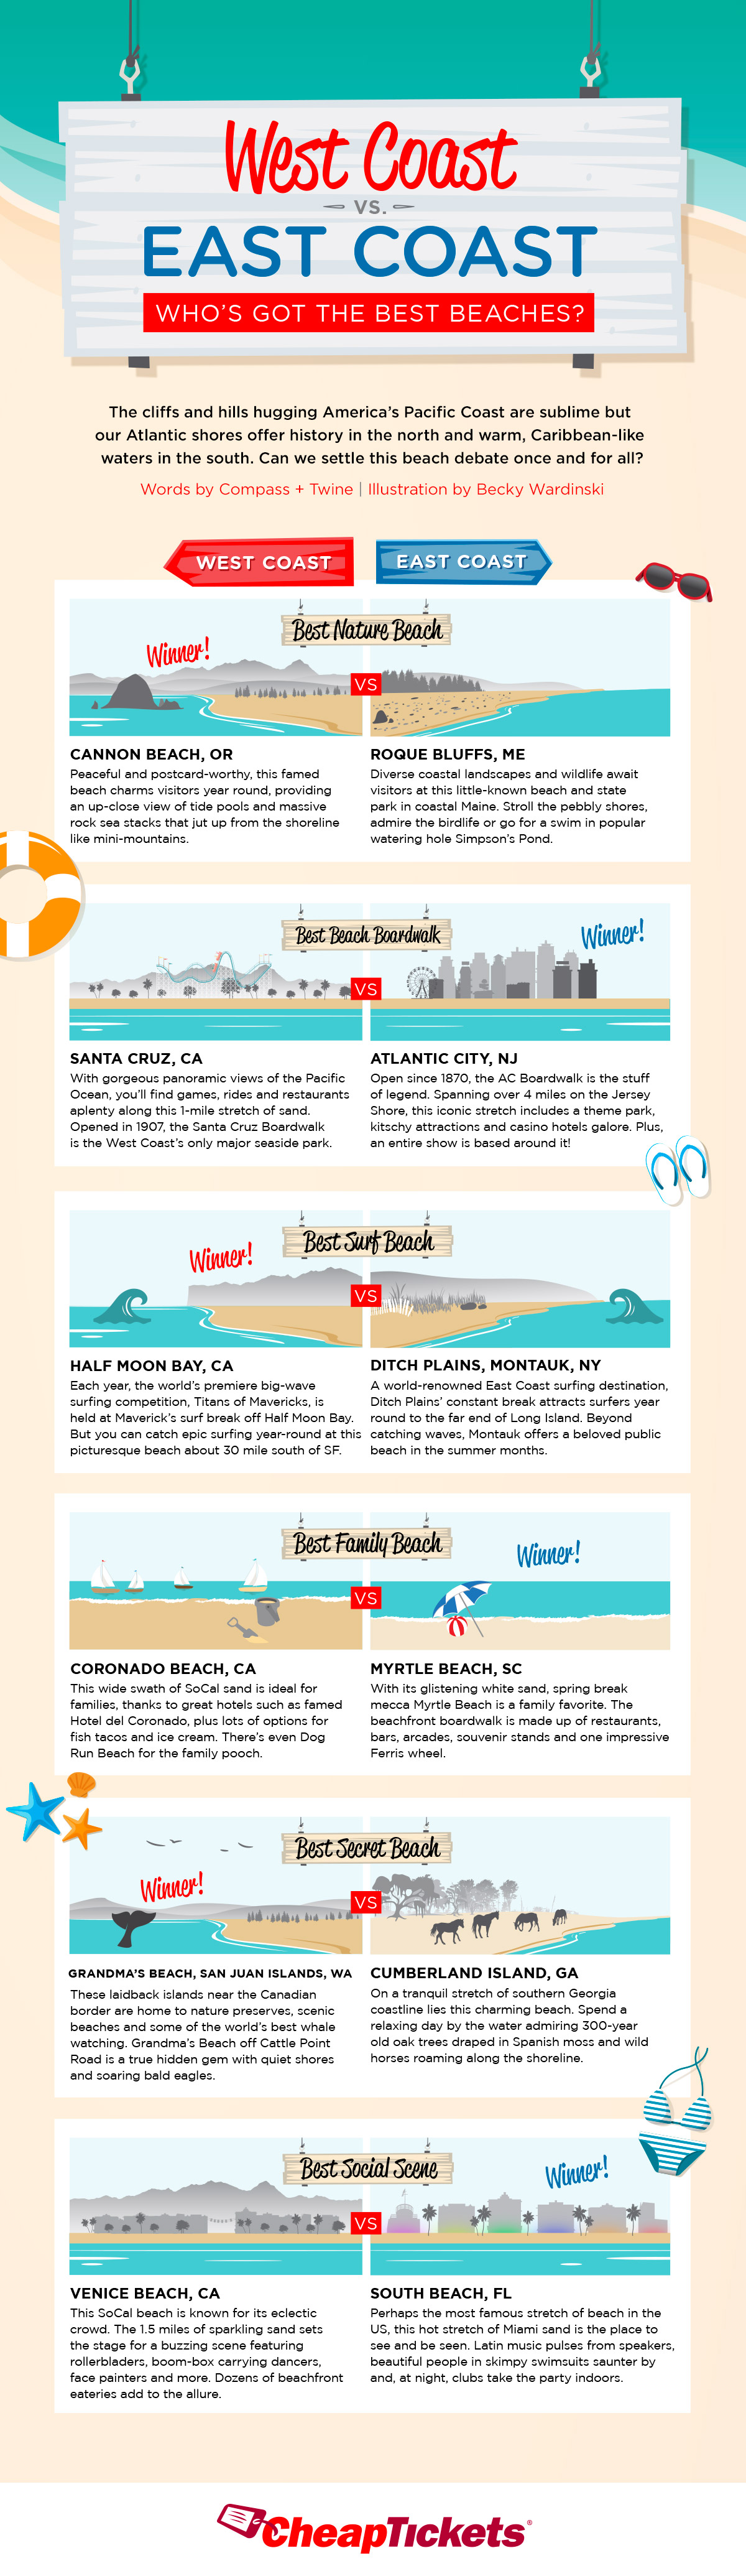 Battle of the Beaches: East Coast vs West Coast infographic